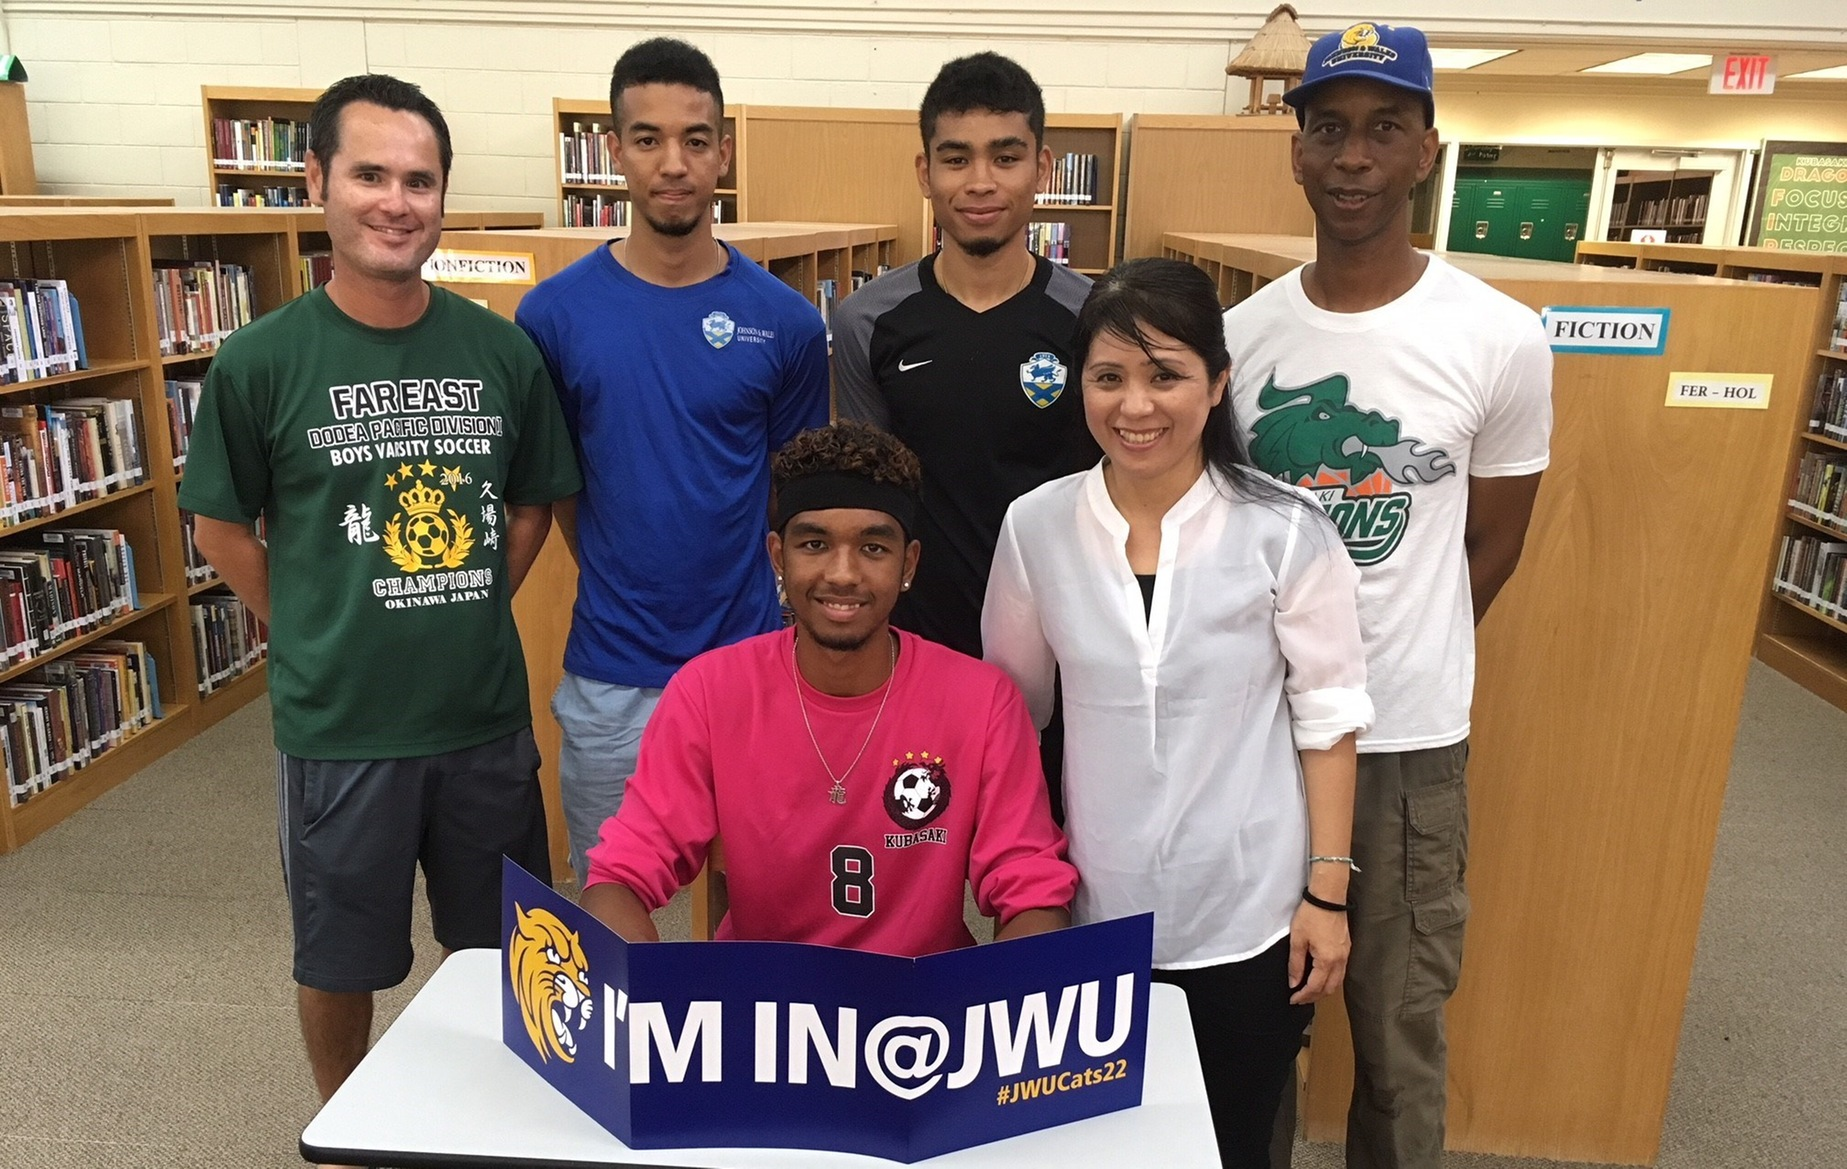 ILijah Washington Joins Brothers On The Pitch at JWU